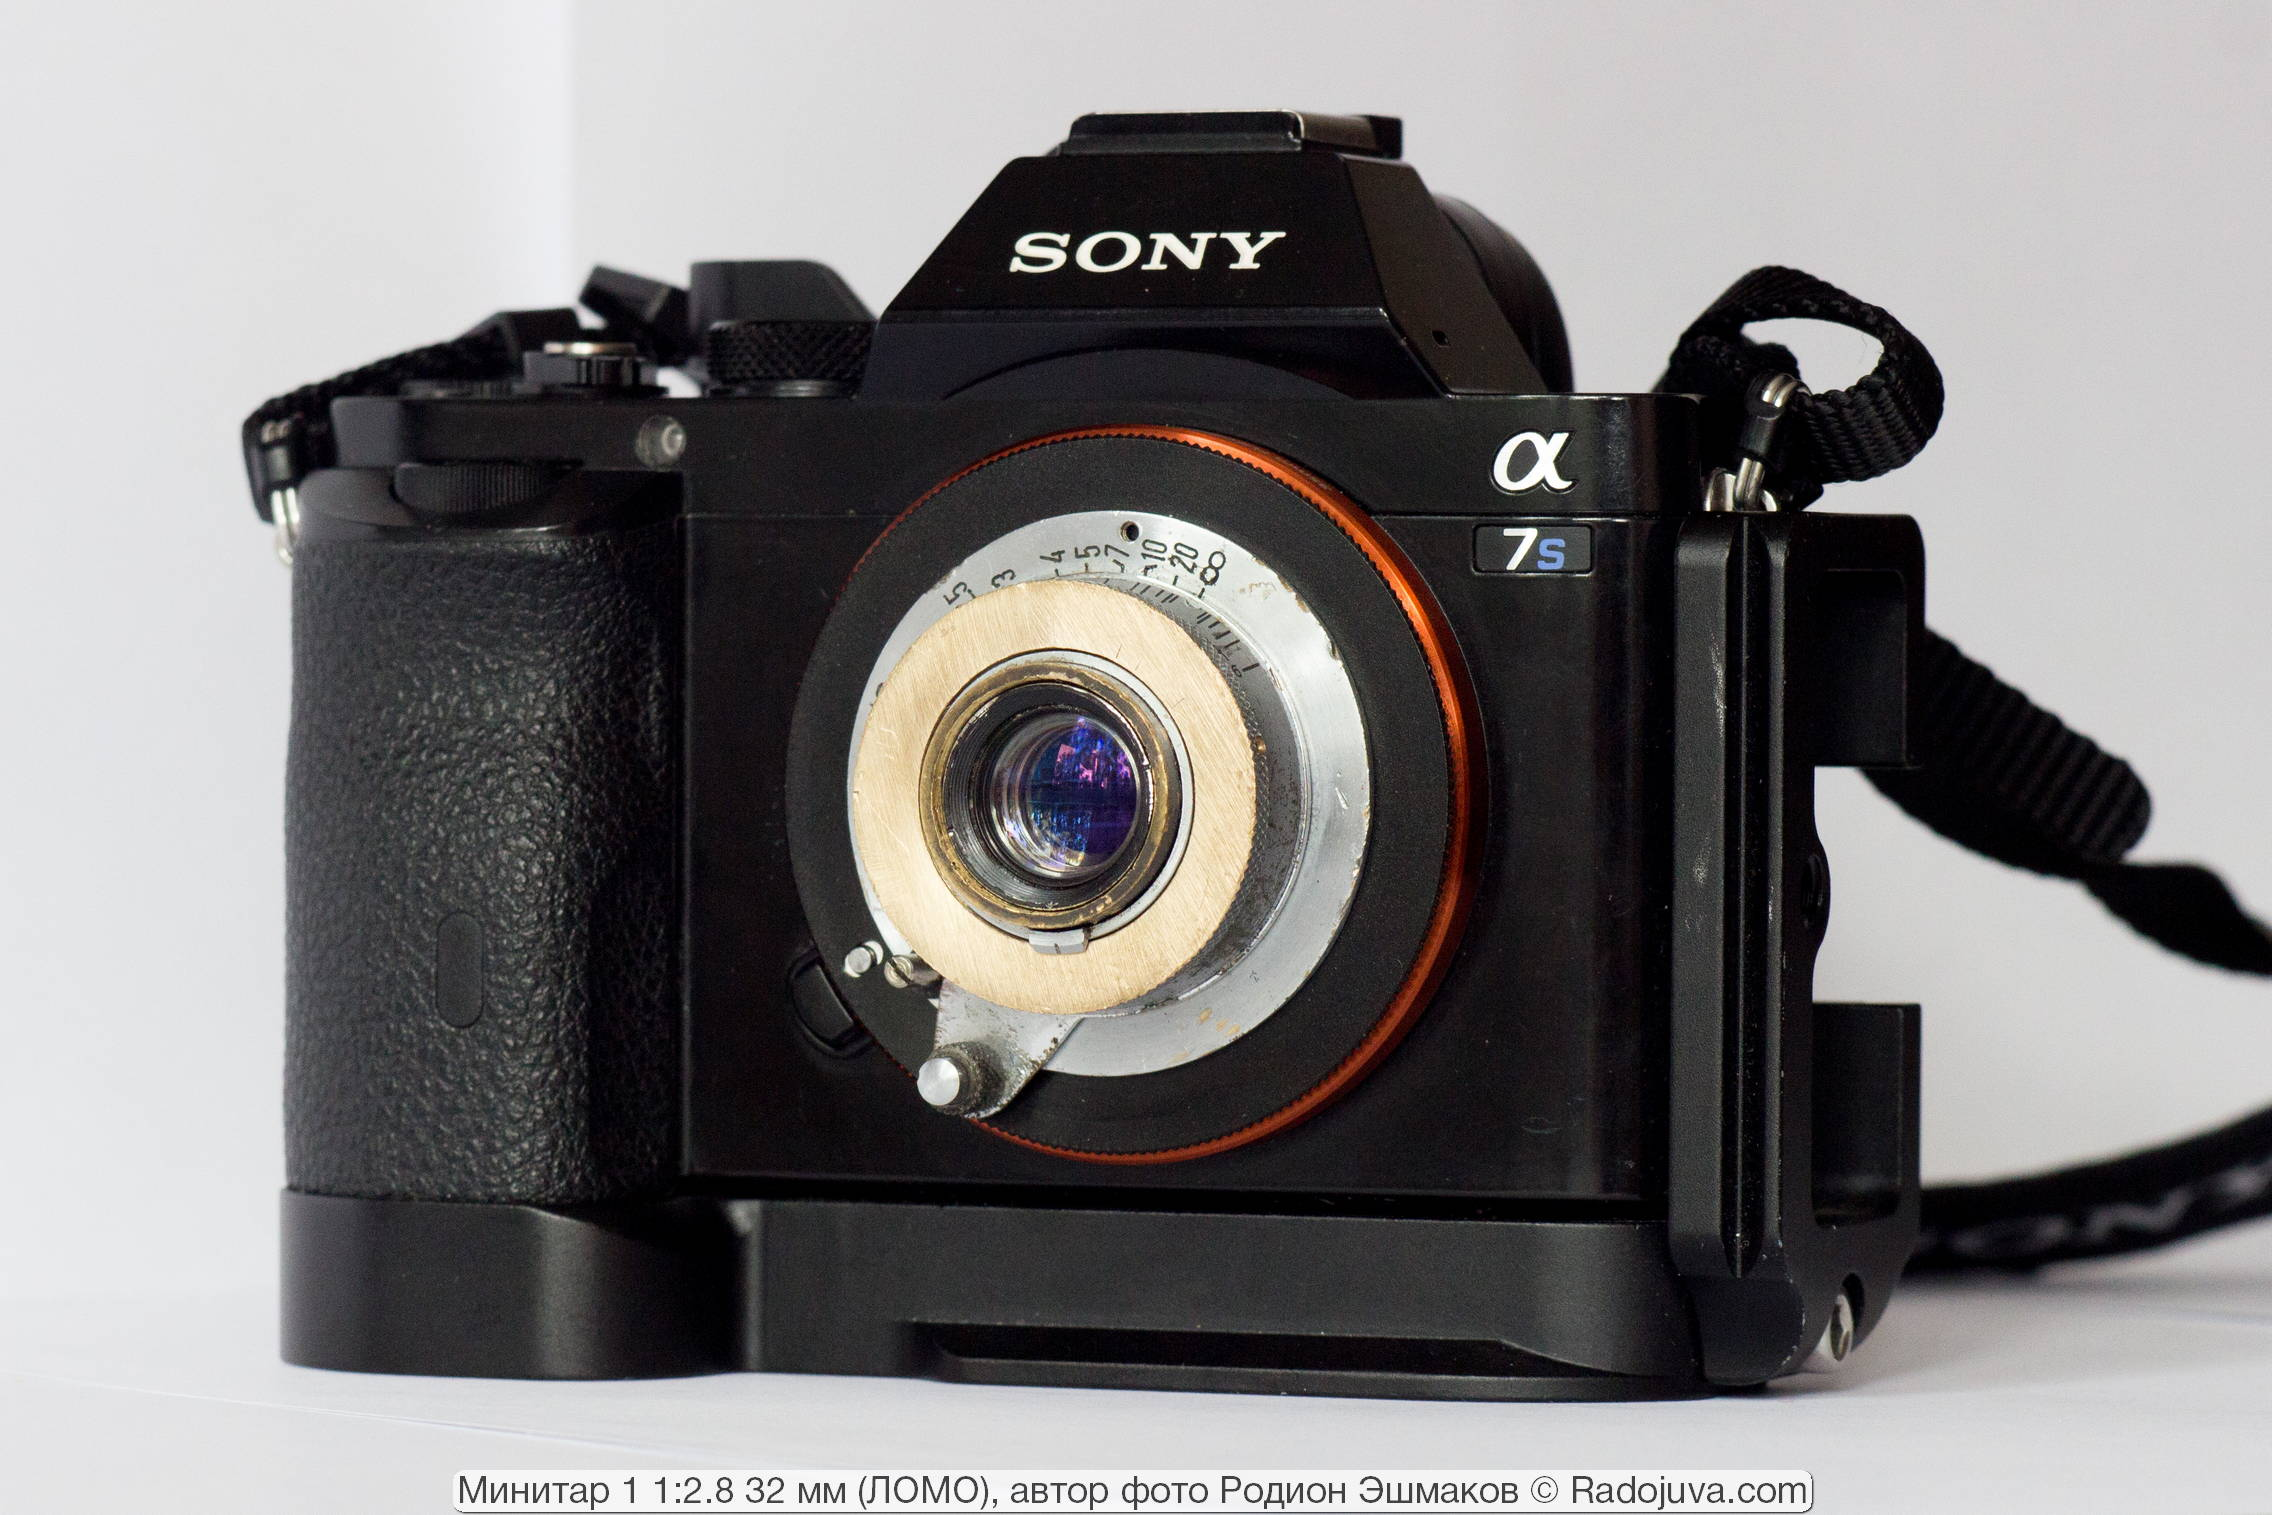 On the Sony A7s, the lens looks like a very fashionable bayonet cover.